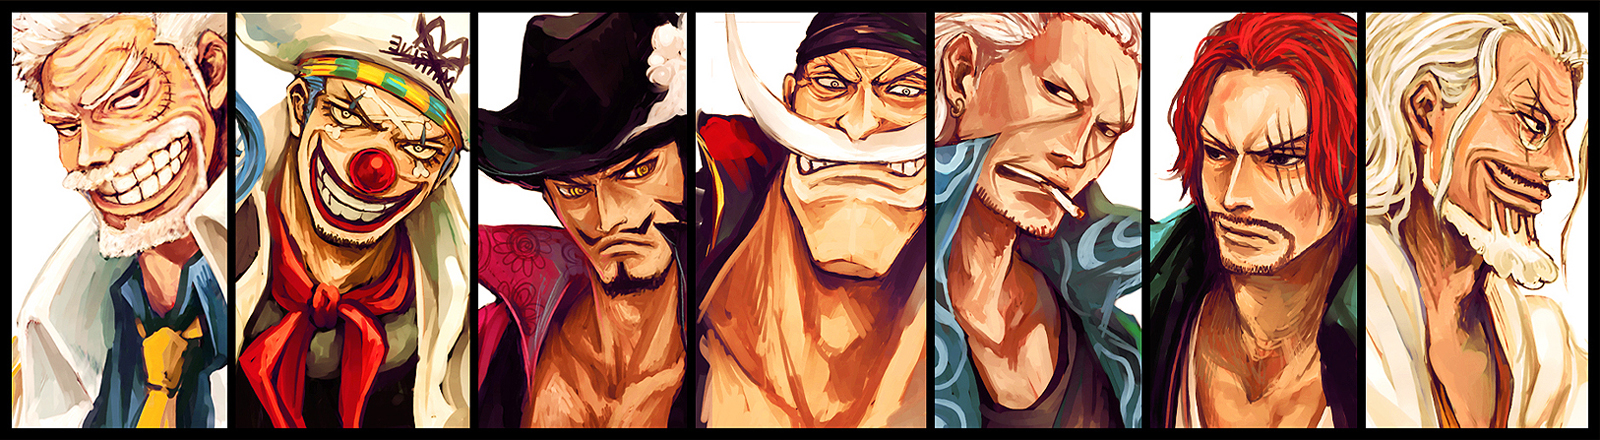 Shanks Wallpaper One Piece Onepiecefull432781 1600x440